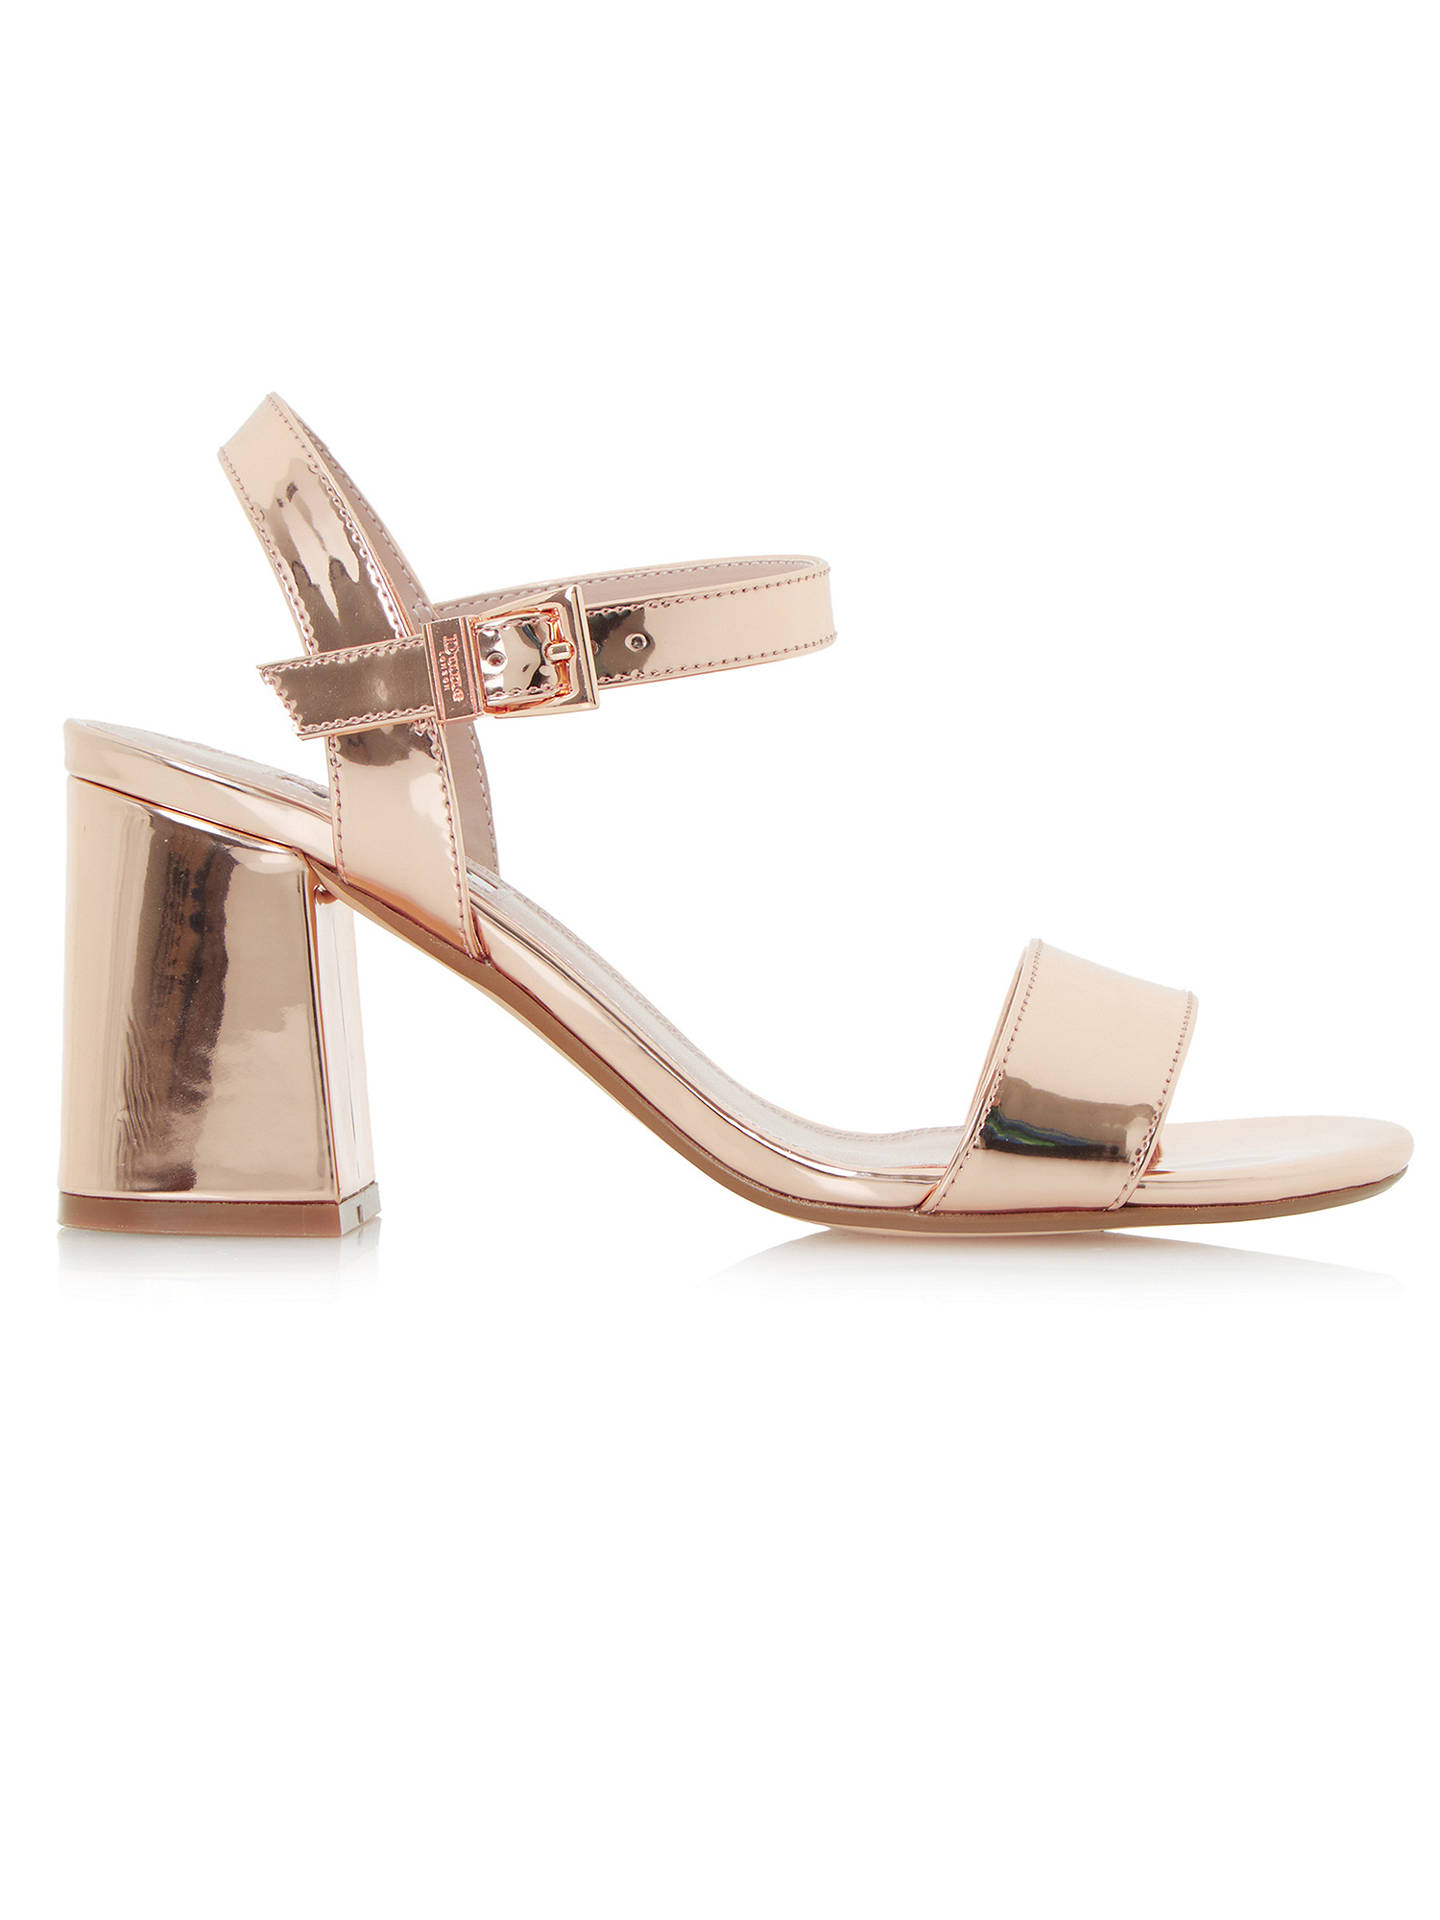 b00c1ae9e5e Dune Mylow Block Heeled Sandals, Rose Gold at John Lewis & Partners